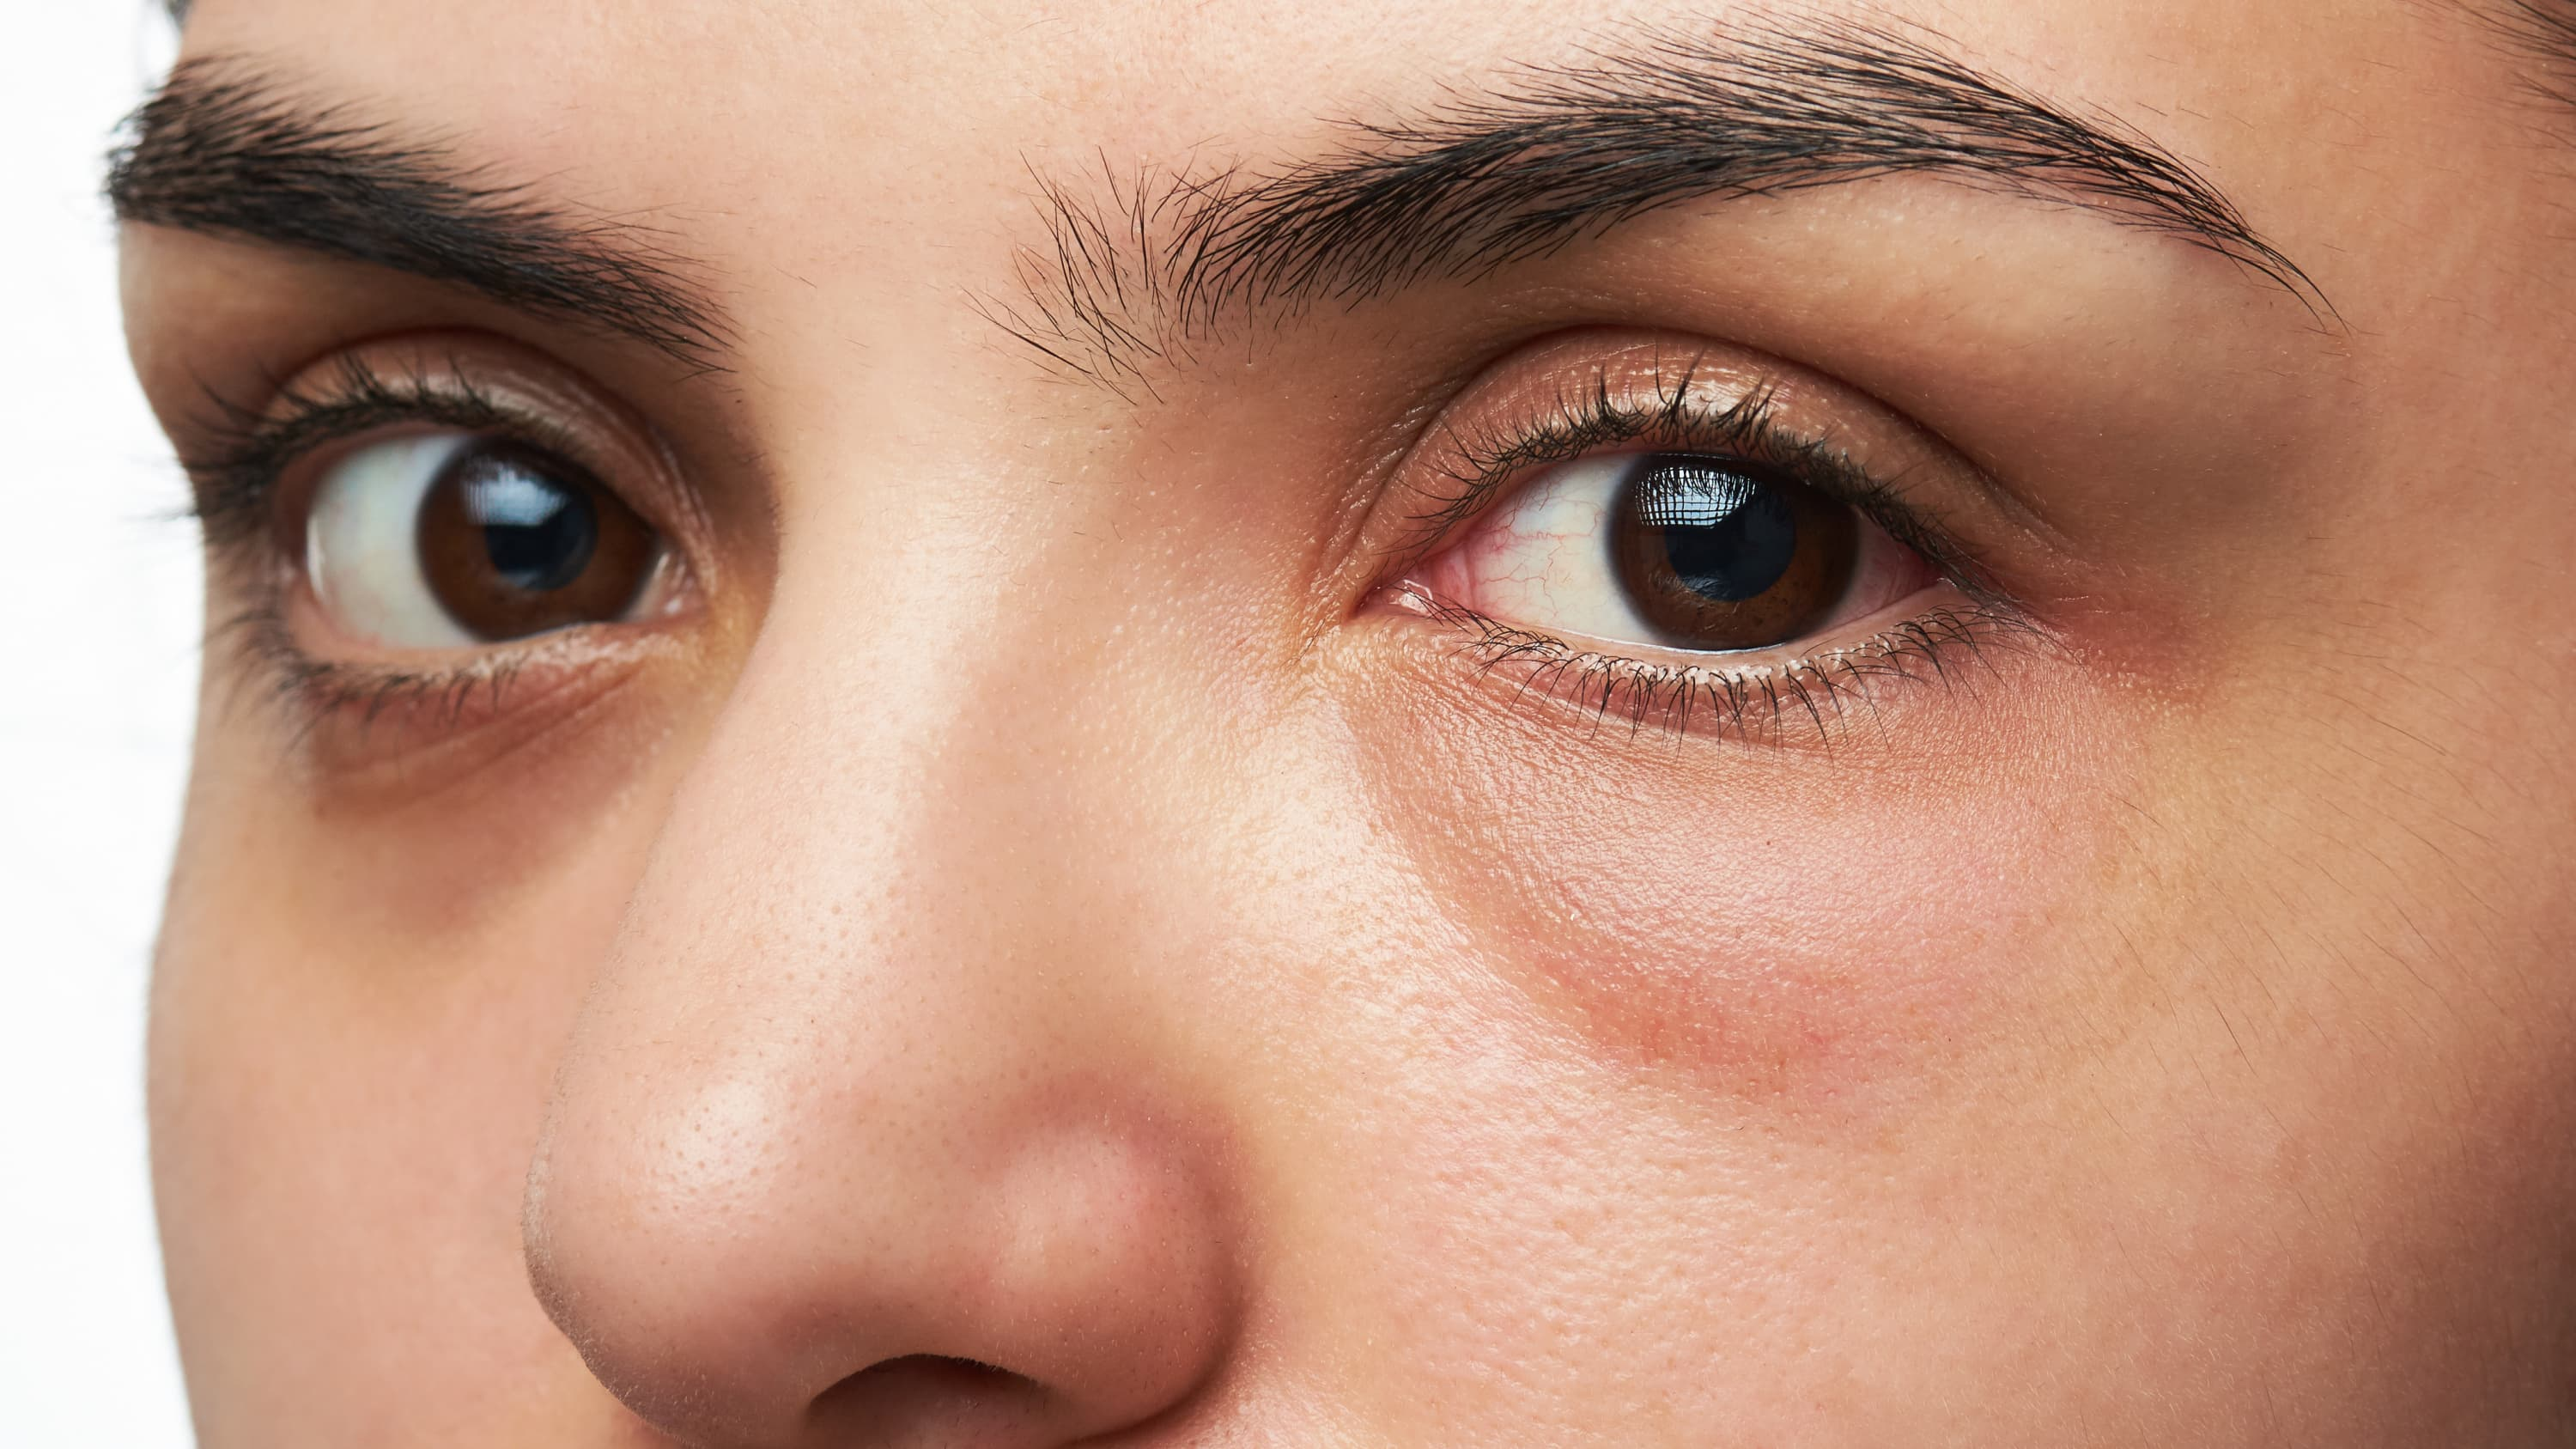 A close-up of a woman who possibly has a corneal abrasion